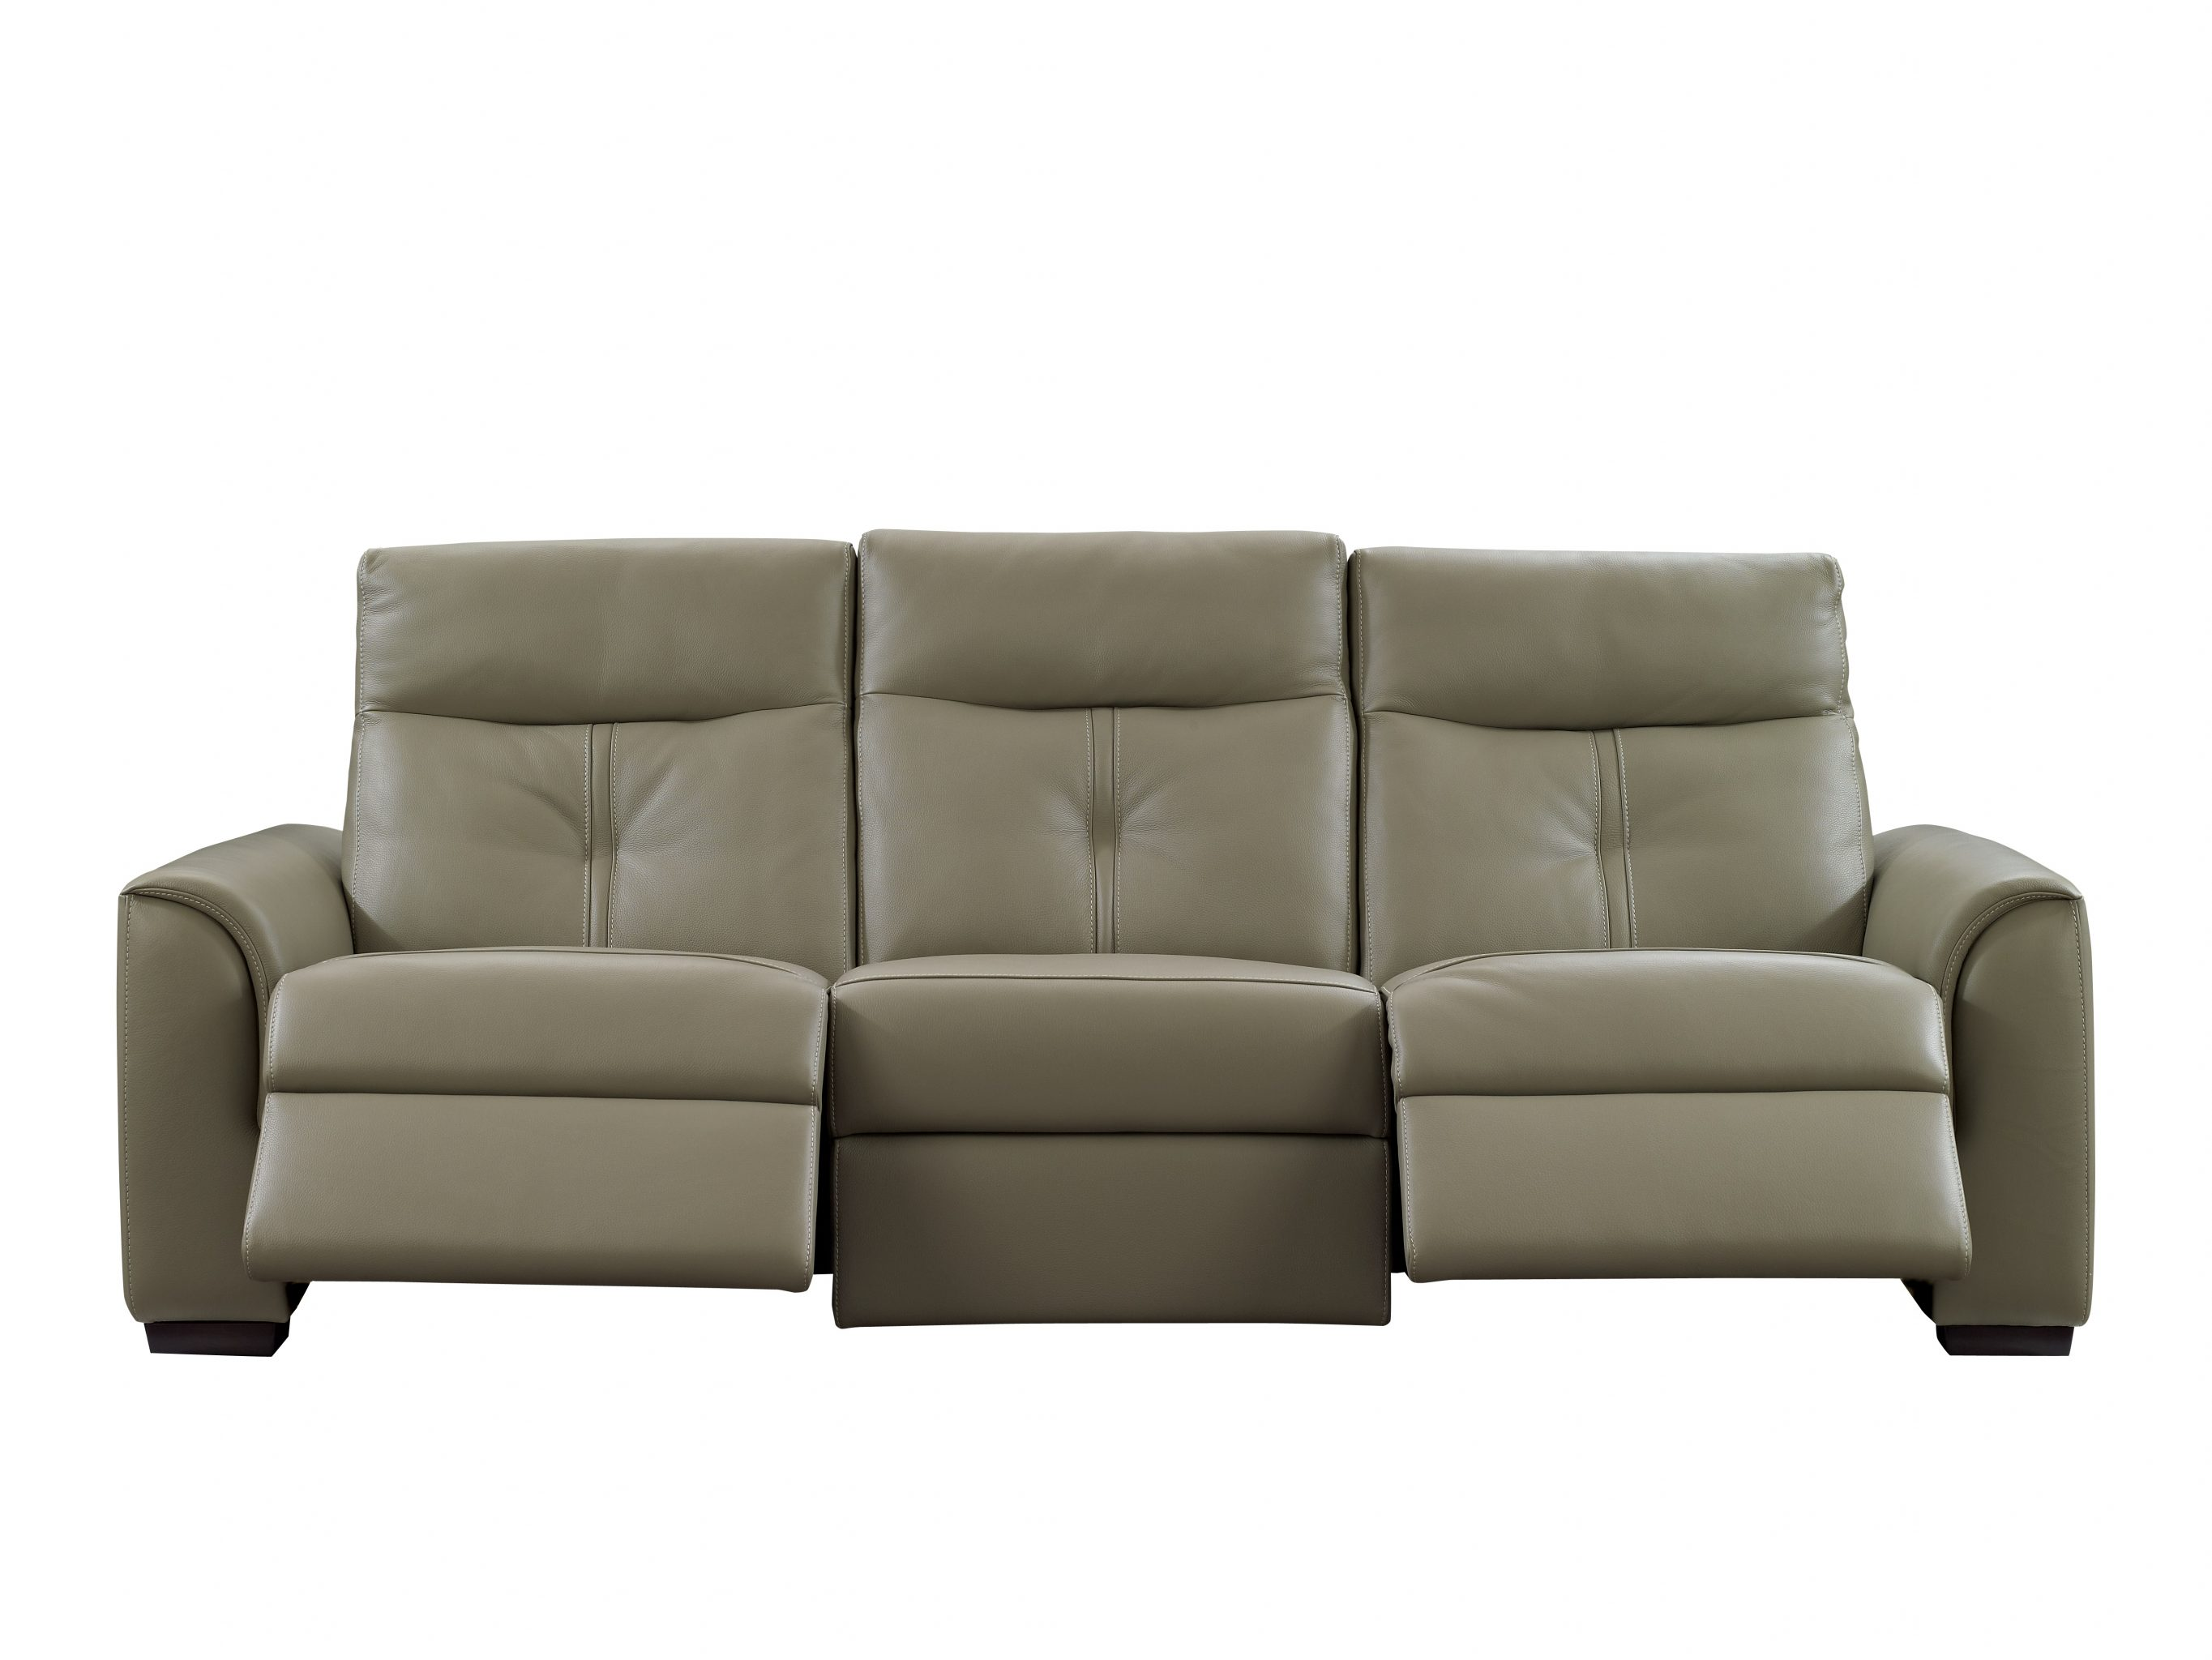 Avery Power Inclining Sofa Collection LaDiff : Avery52355 Sb from ladiff.com size 5436 x 4080 jpeg 2324kB